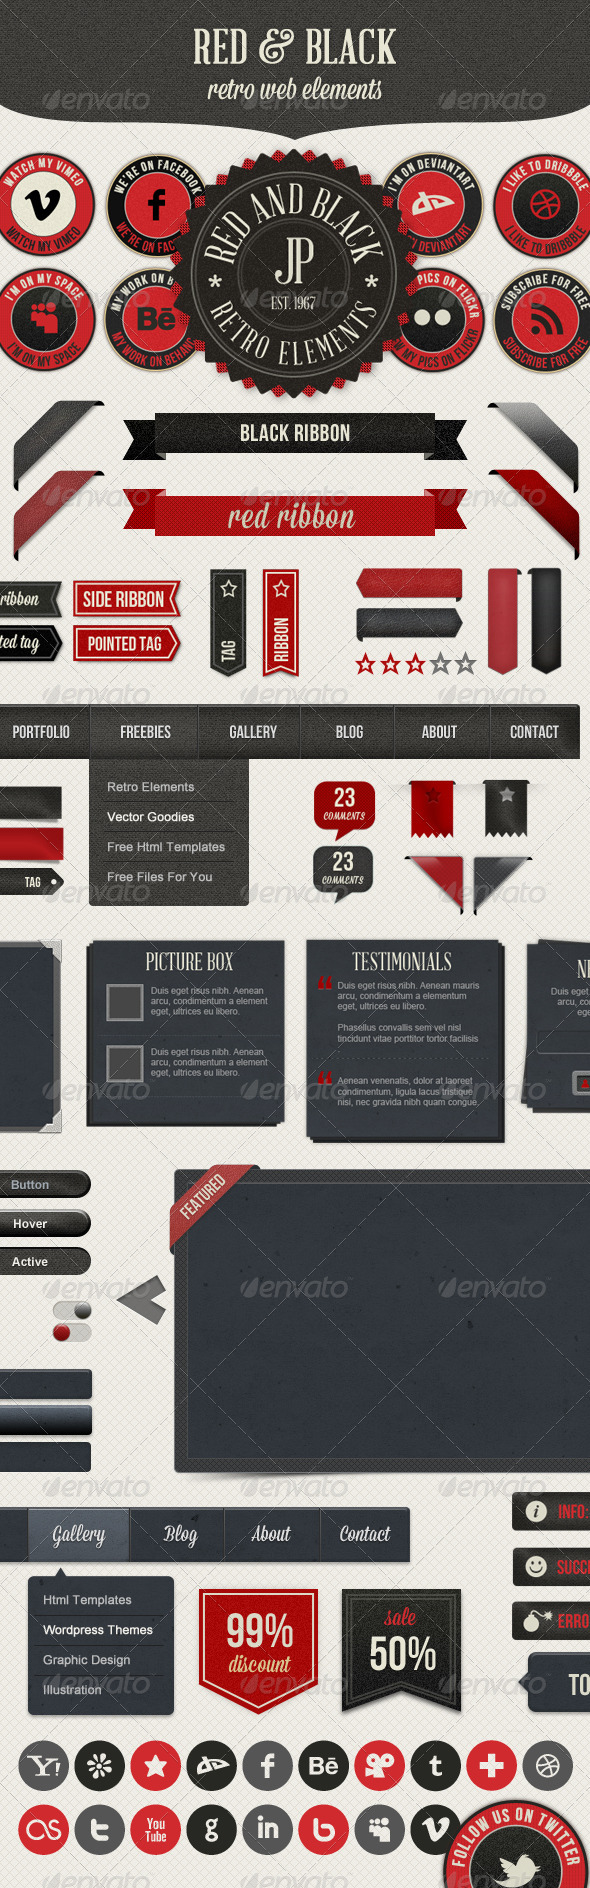 GraphicRiver Retro Web Elements Red & Black Pack 3013304